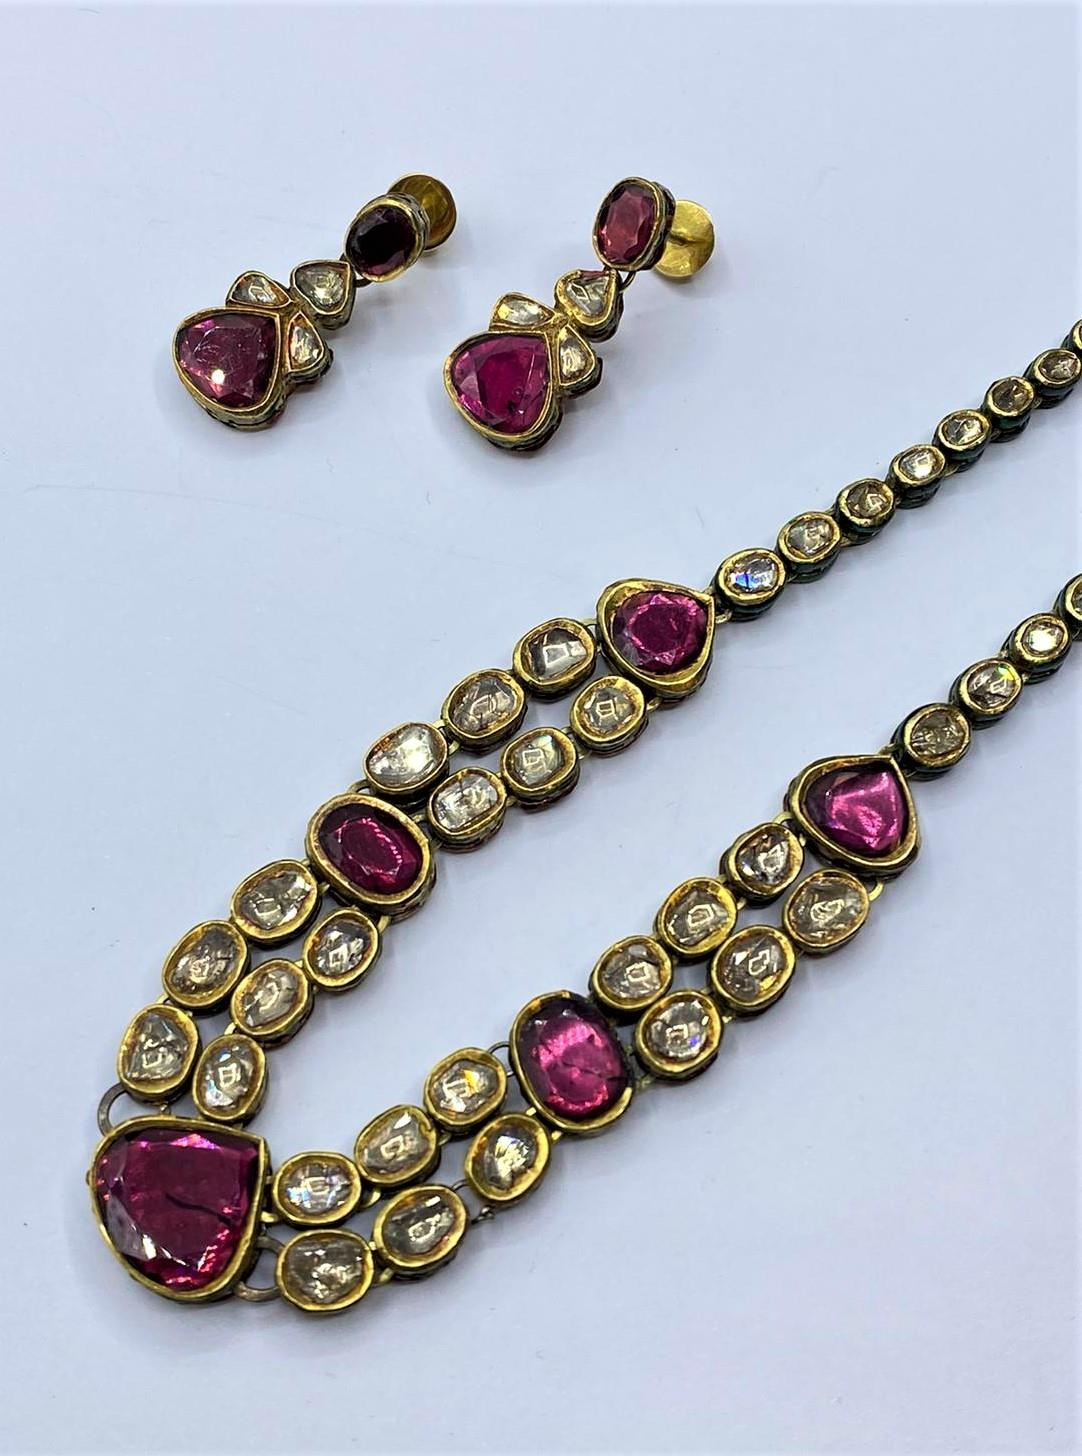 18k Indian set of Ruby and Rose Diamonds NECKLACE (40cm) and EARRINGS. 68g. - Image 4 of 9